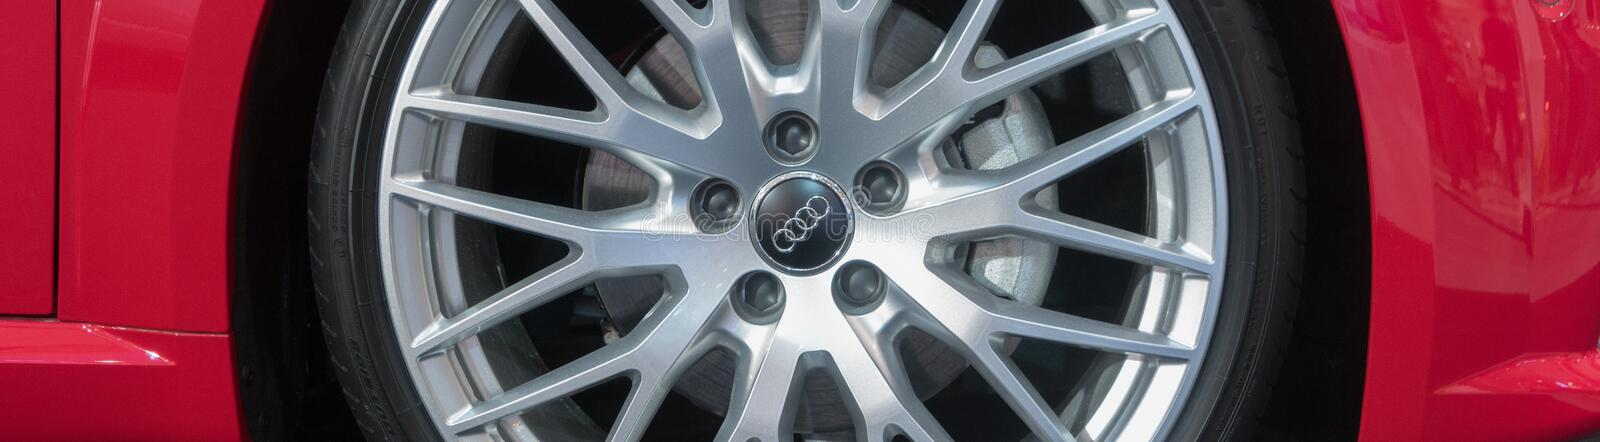 Matte Finish Wheel Rims de encargo en Audi Luxury Car imagenes de archivo